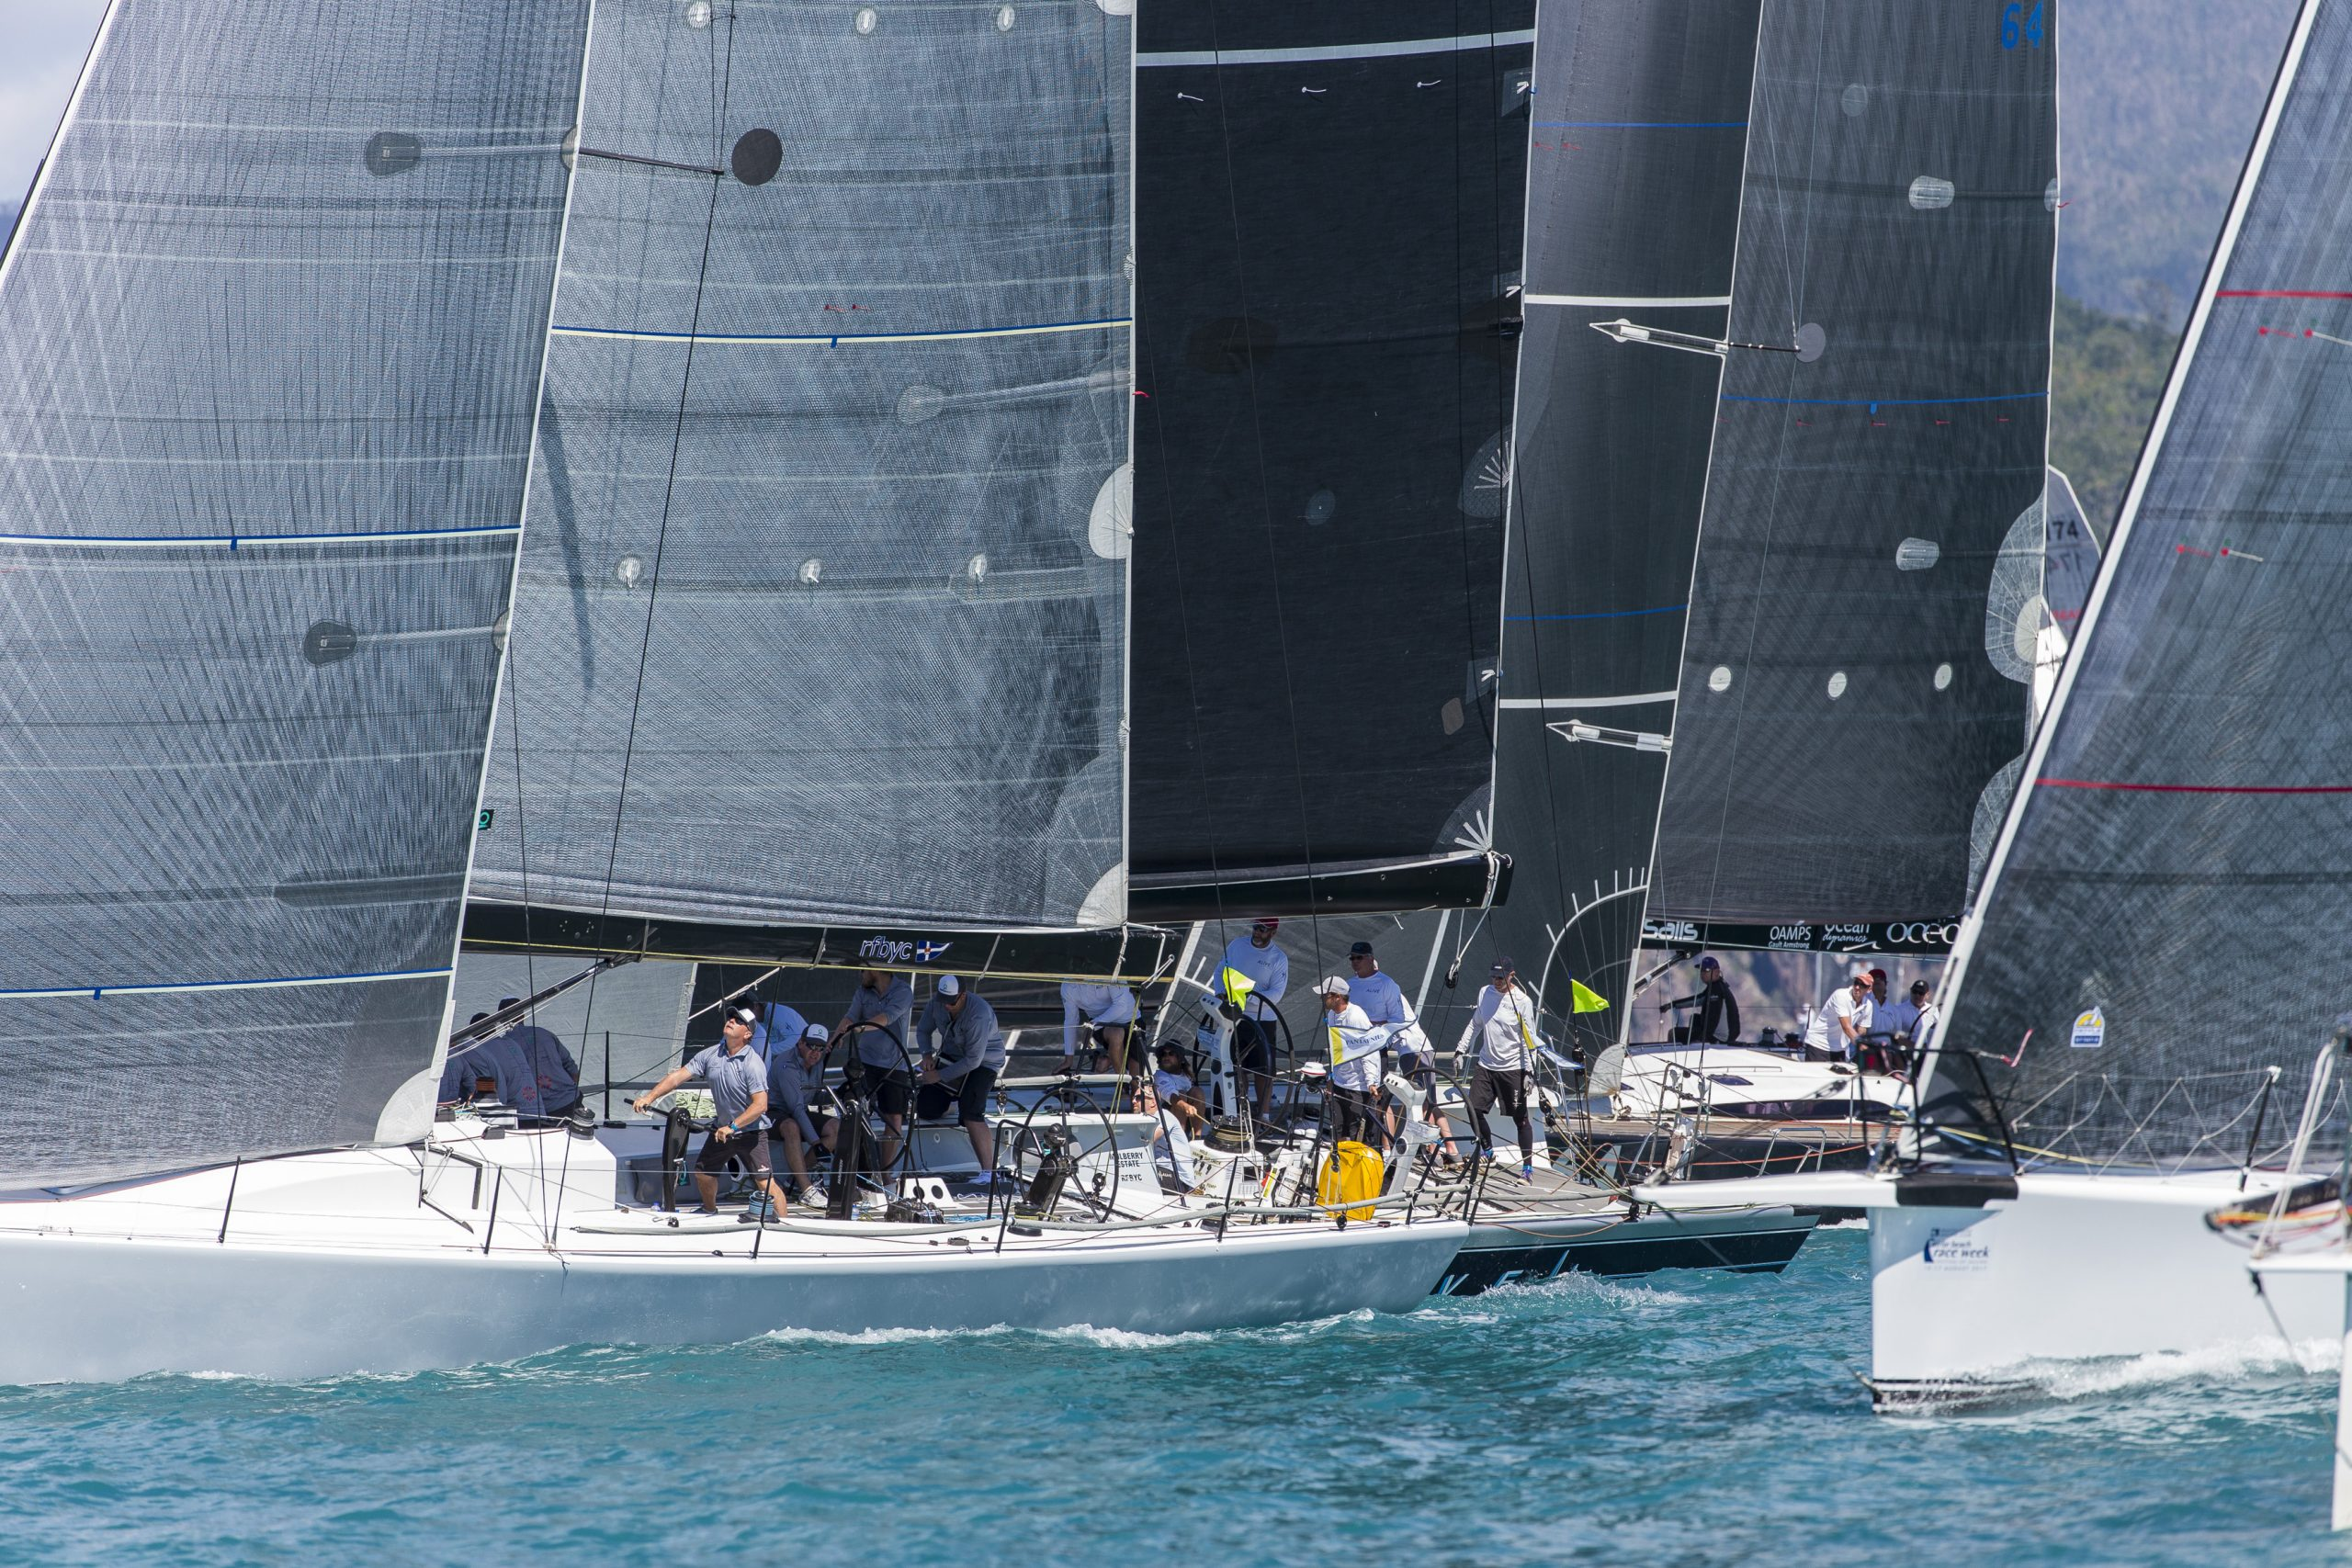 A wall of boats on the start line - Andrea Francolini